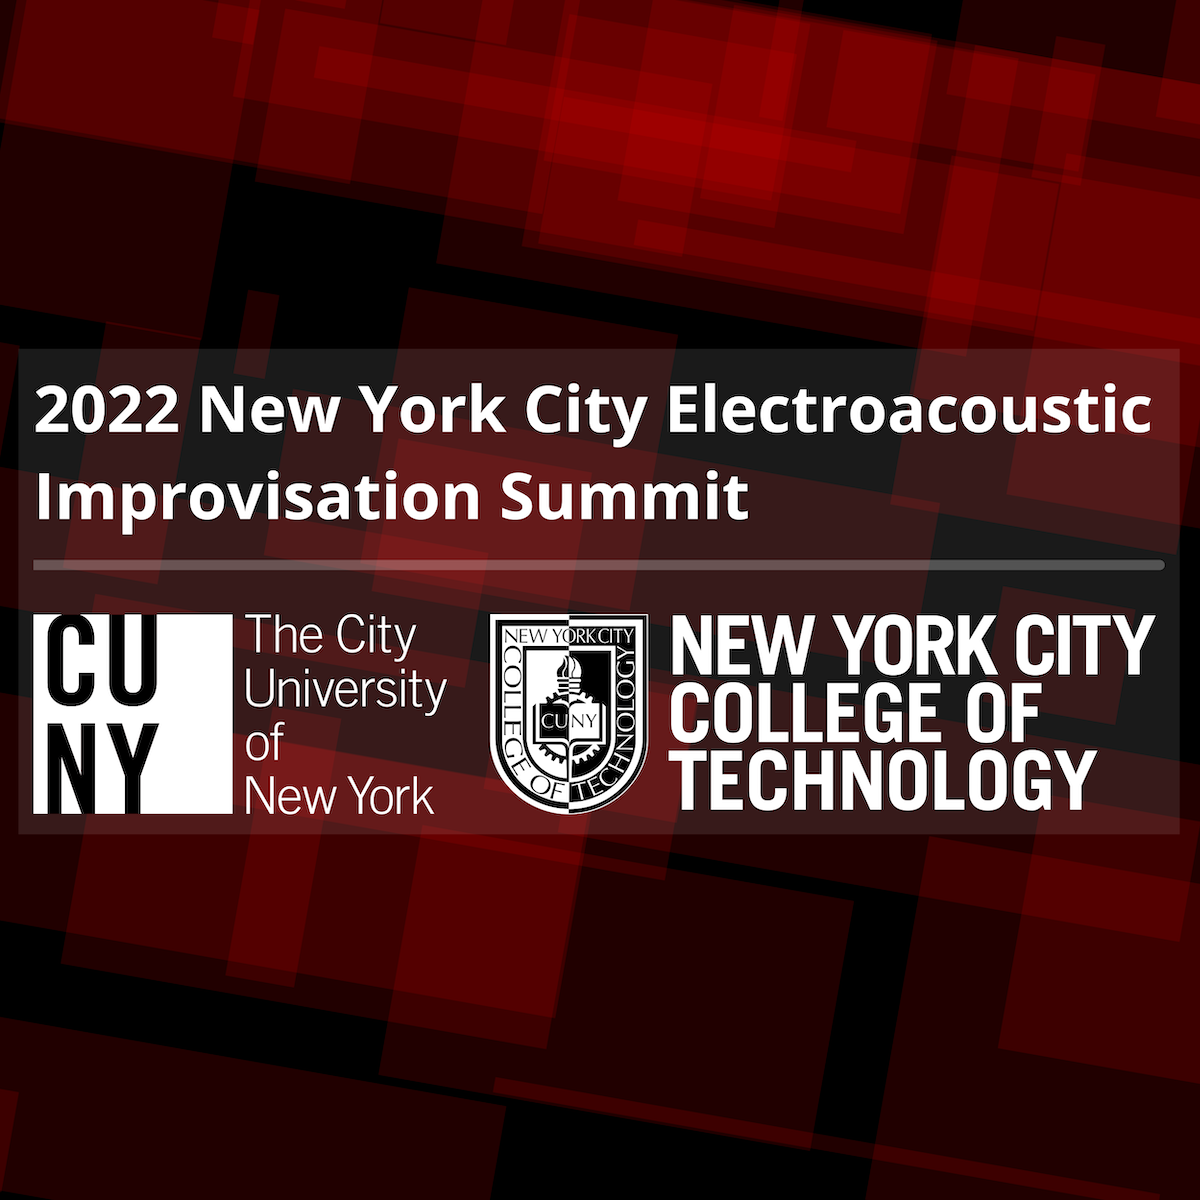 NYC EIS: New York City Electroacoustic Improvisation Summit